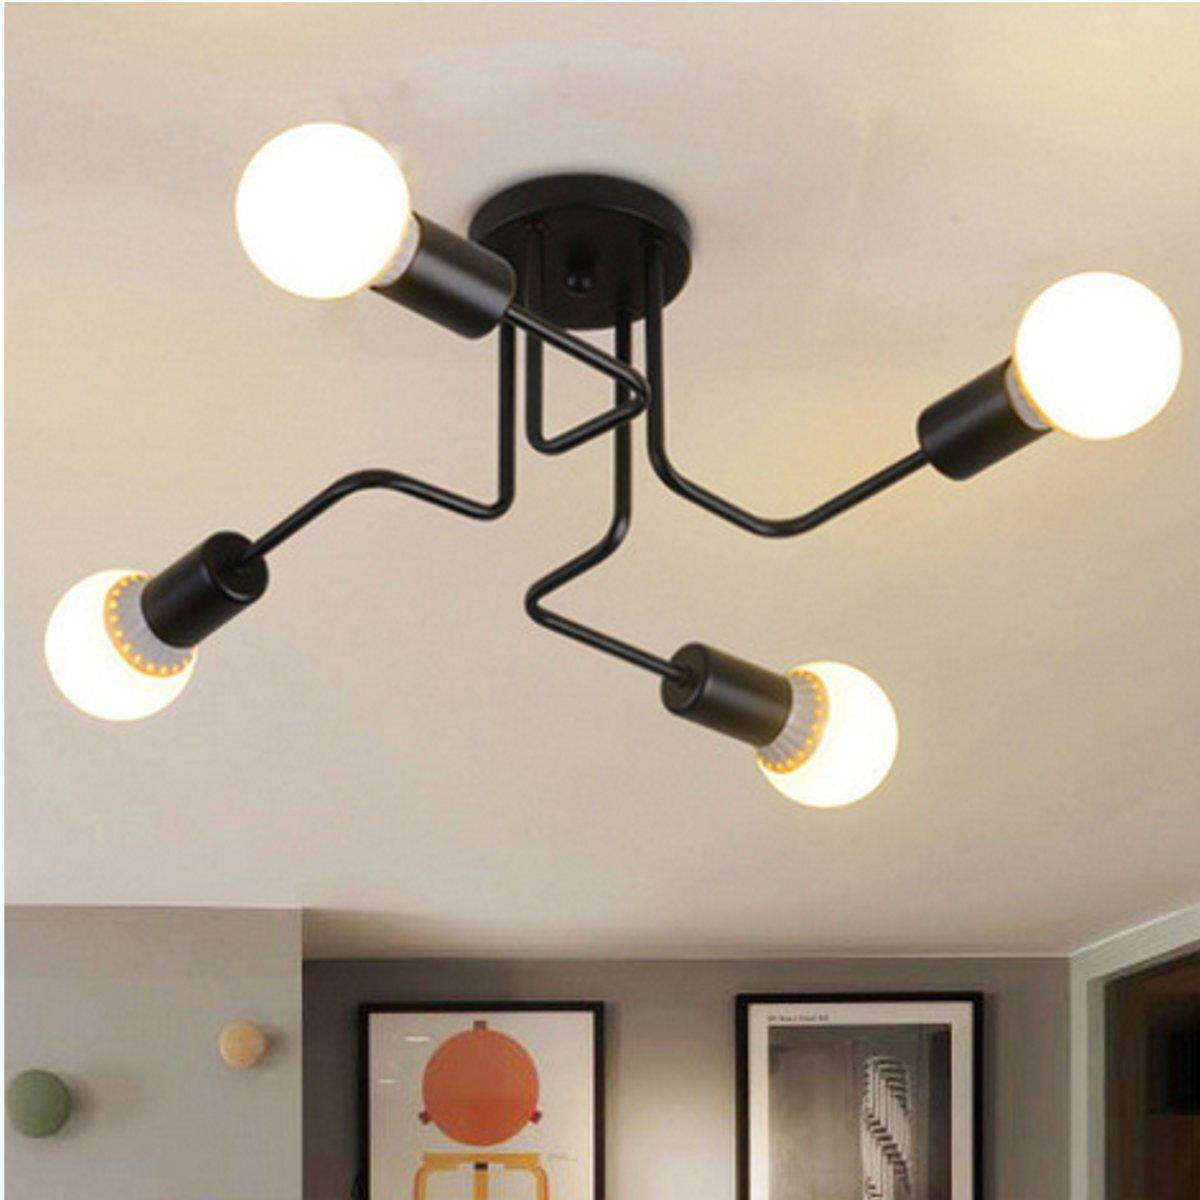 Light fixtures for home lighting s brands review in philippines